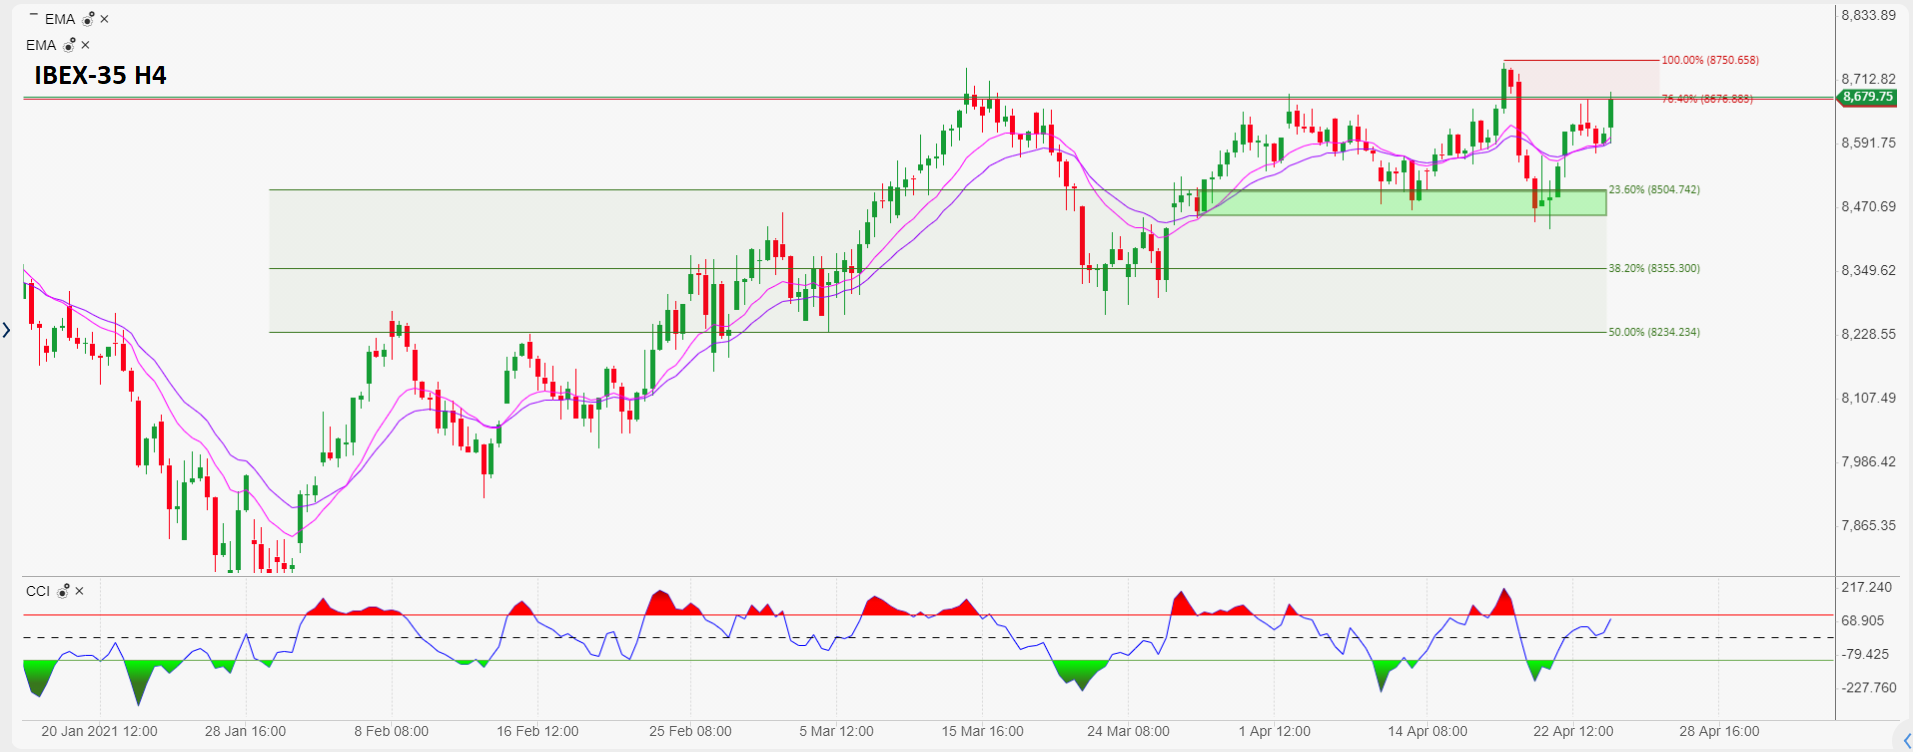 Daily market commentary: The dollar is starting the week